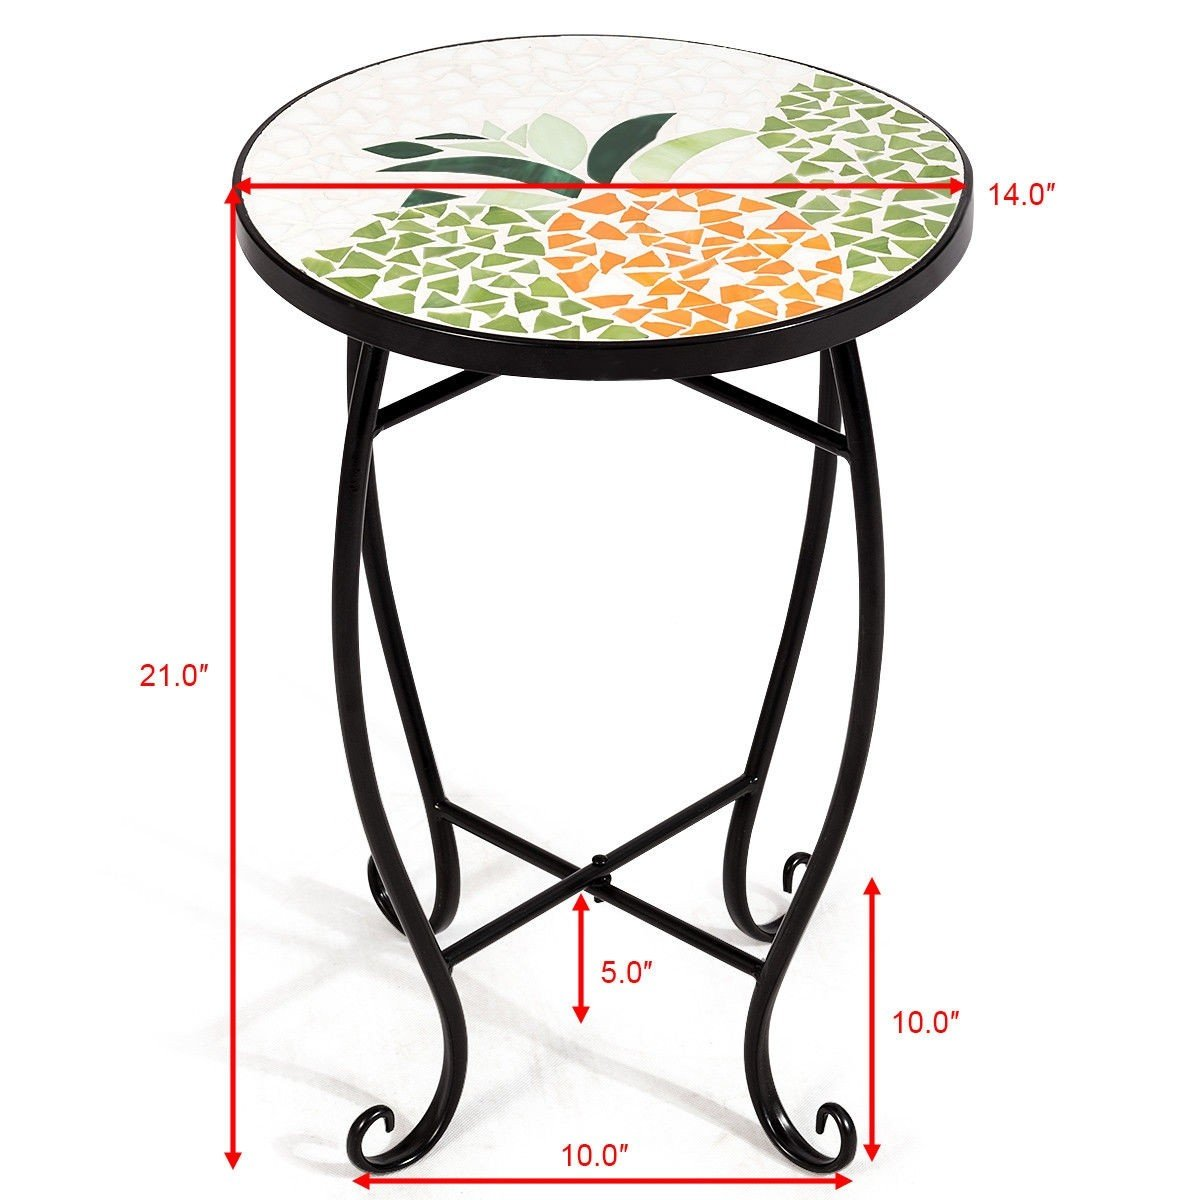 custpromo mosaic accent table metal round side outdoor plant stand cobalt glass top indoor garden patio sweet pineapple kitchen pottery barn coffee and chairs set black white